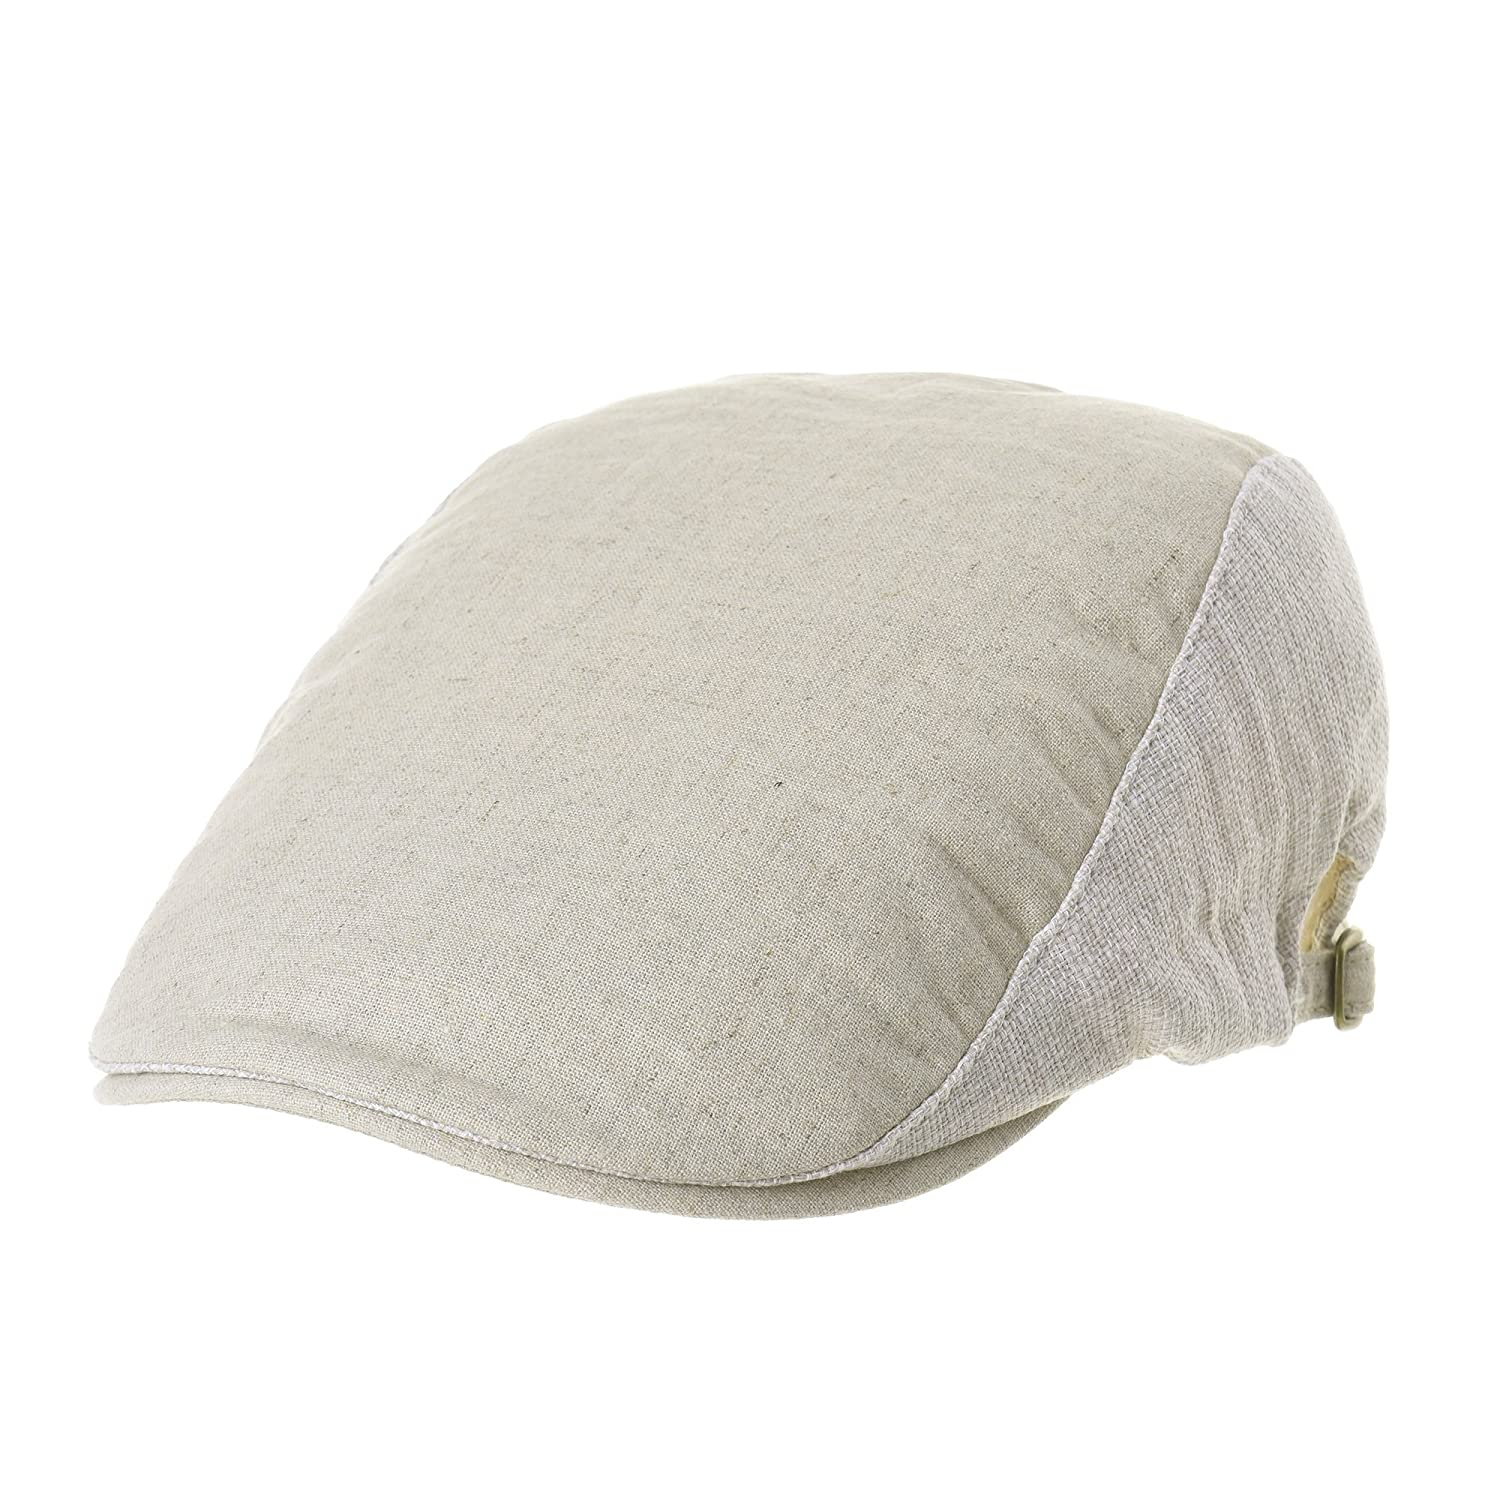 WITHMOONS Summer Linen Flat Cap Two Block Neutral Color Ivy Hat LD3051